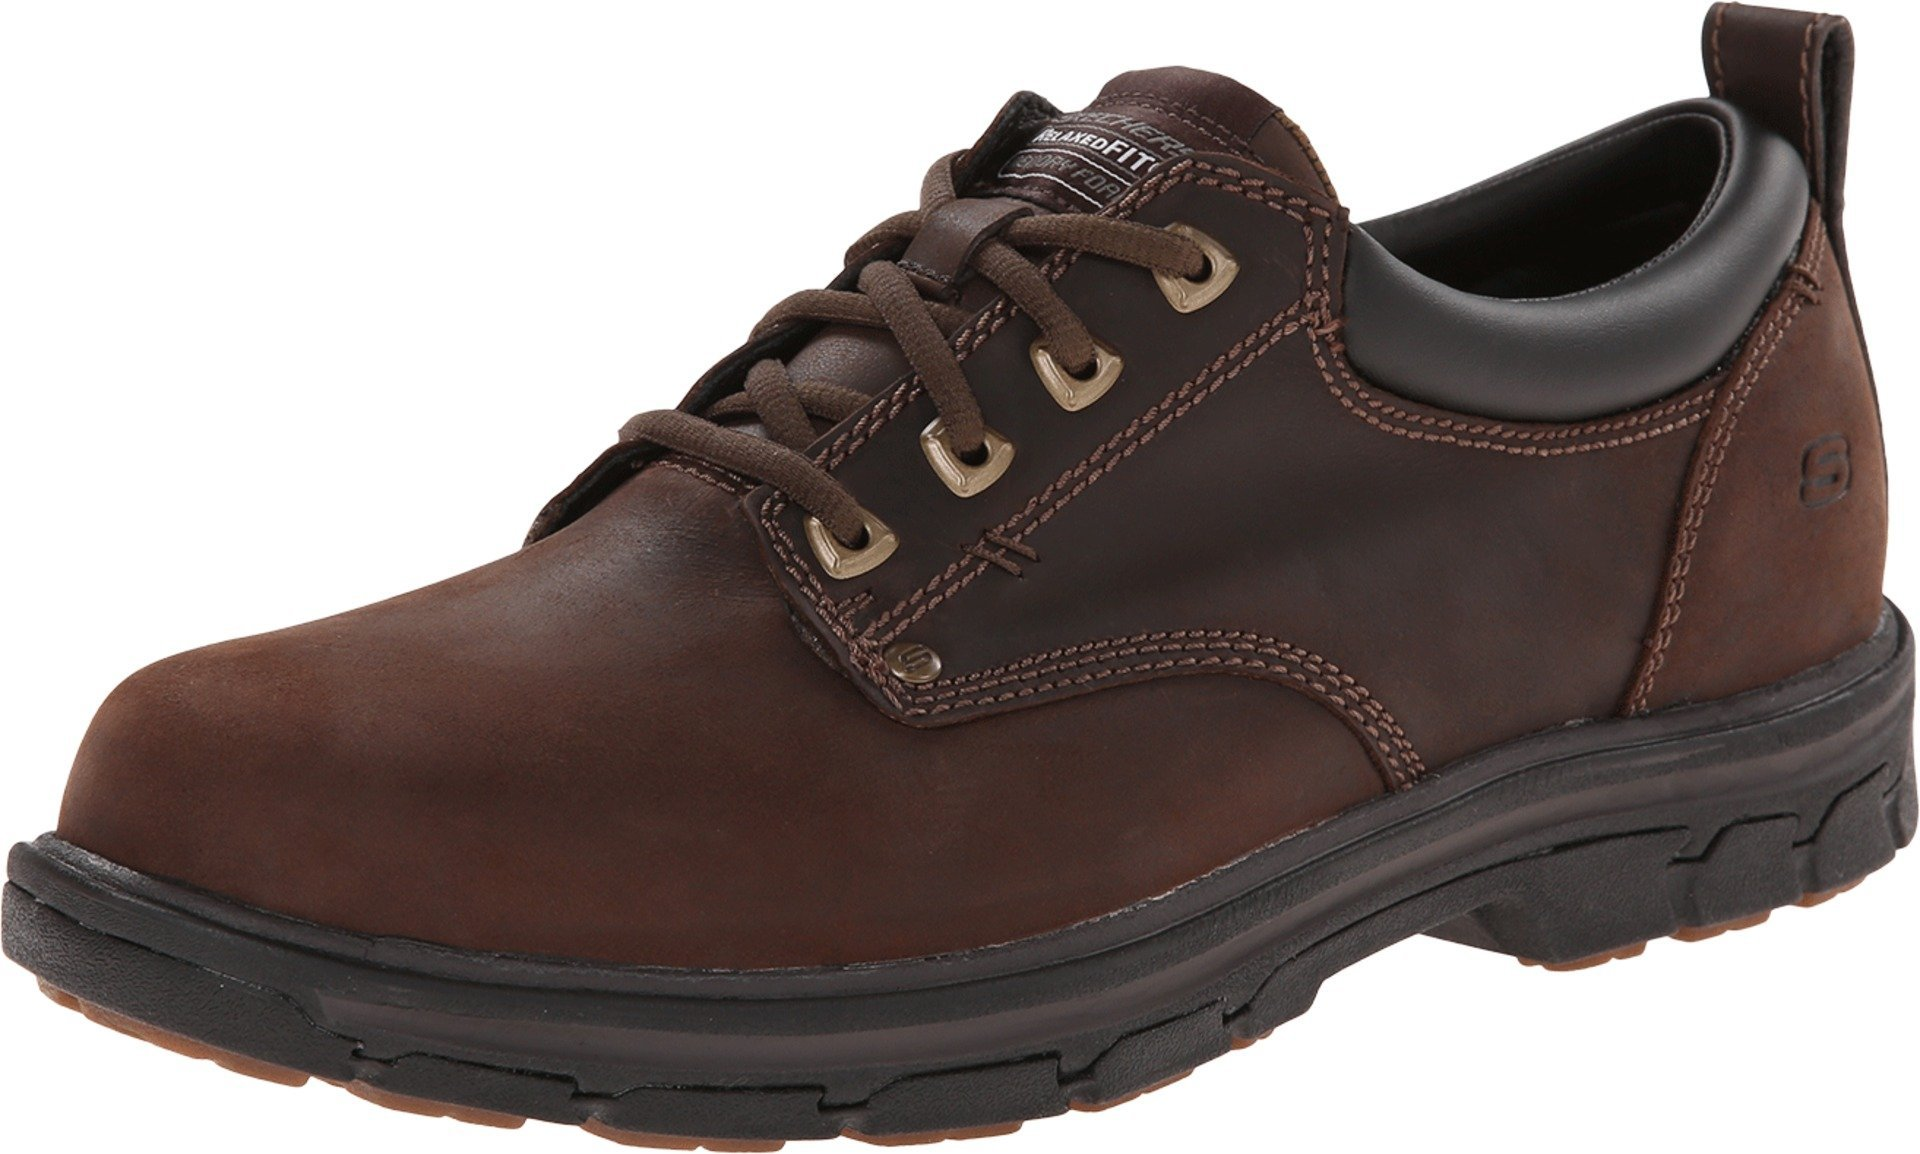 Skechers Men's Segment Rilar Oxford, Brown, 10 H(M) US by Skechers